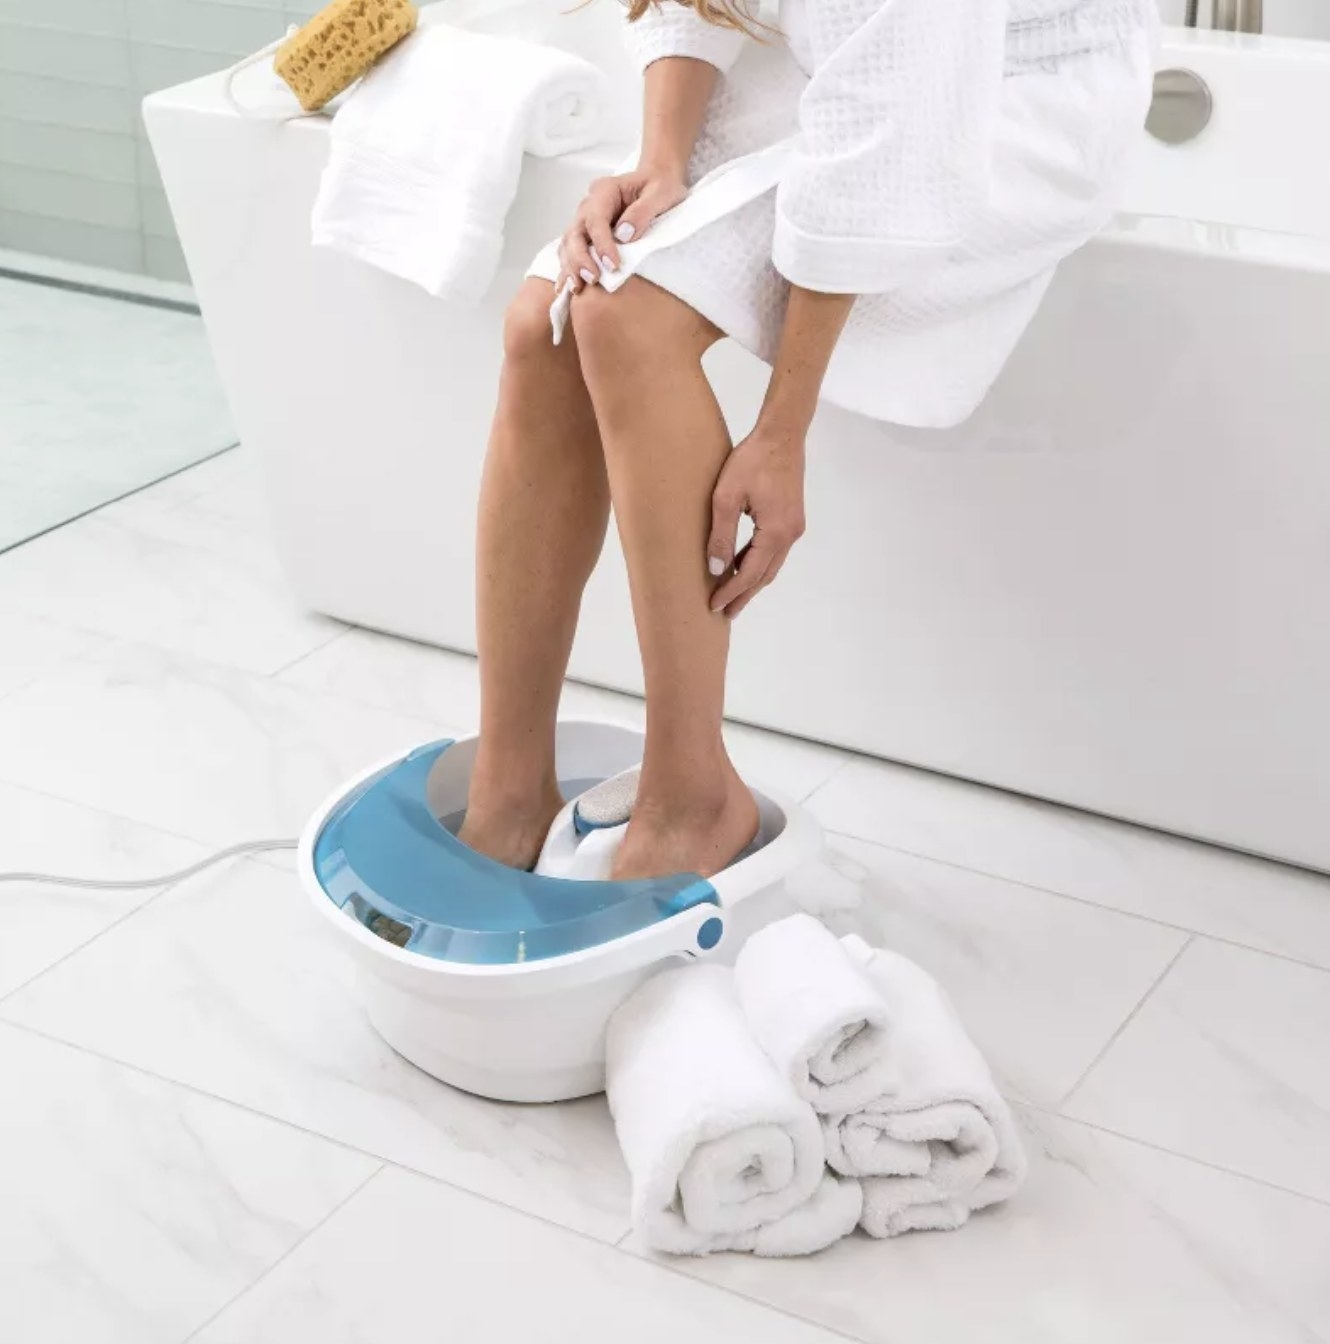 a person with their feet in a blue and white foot spa